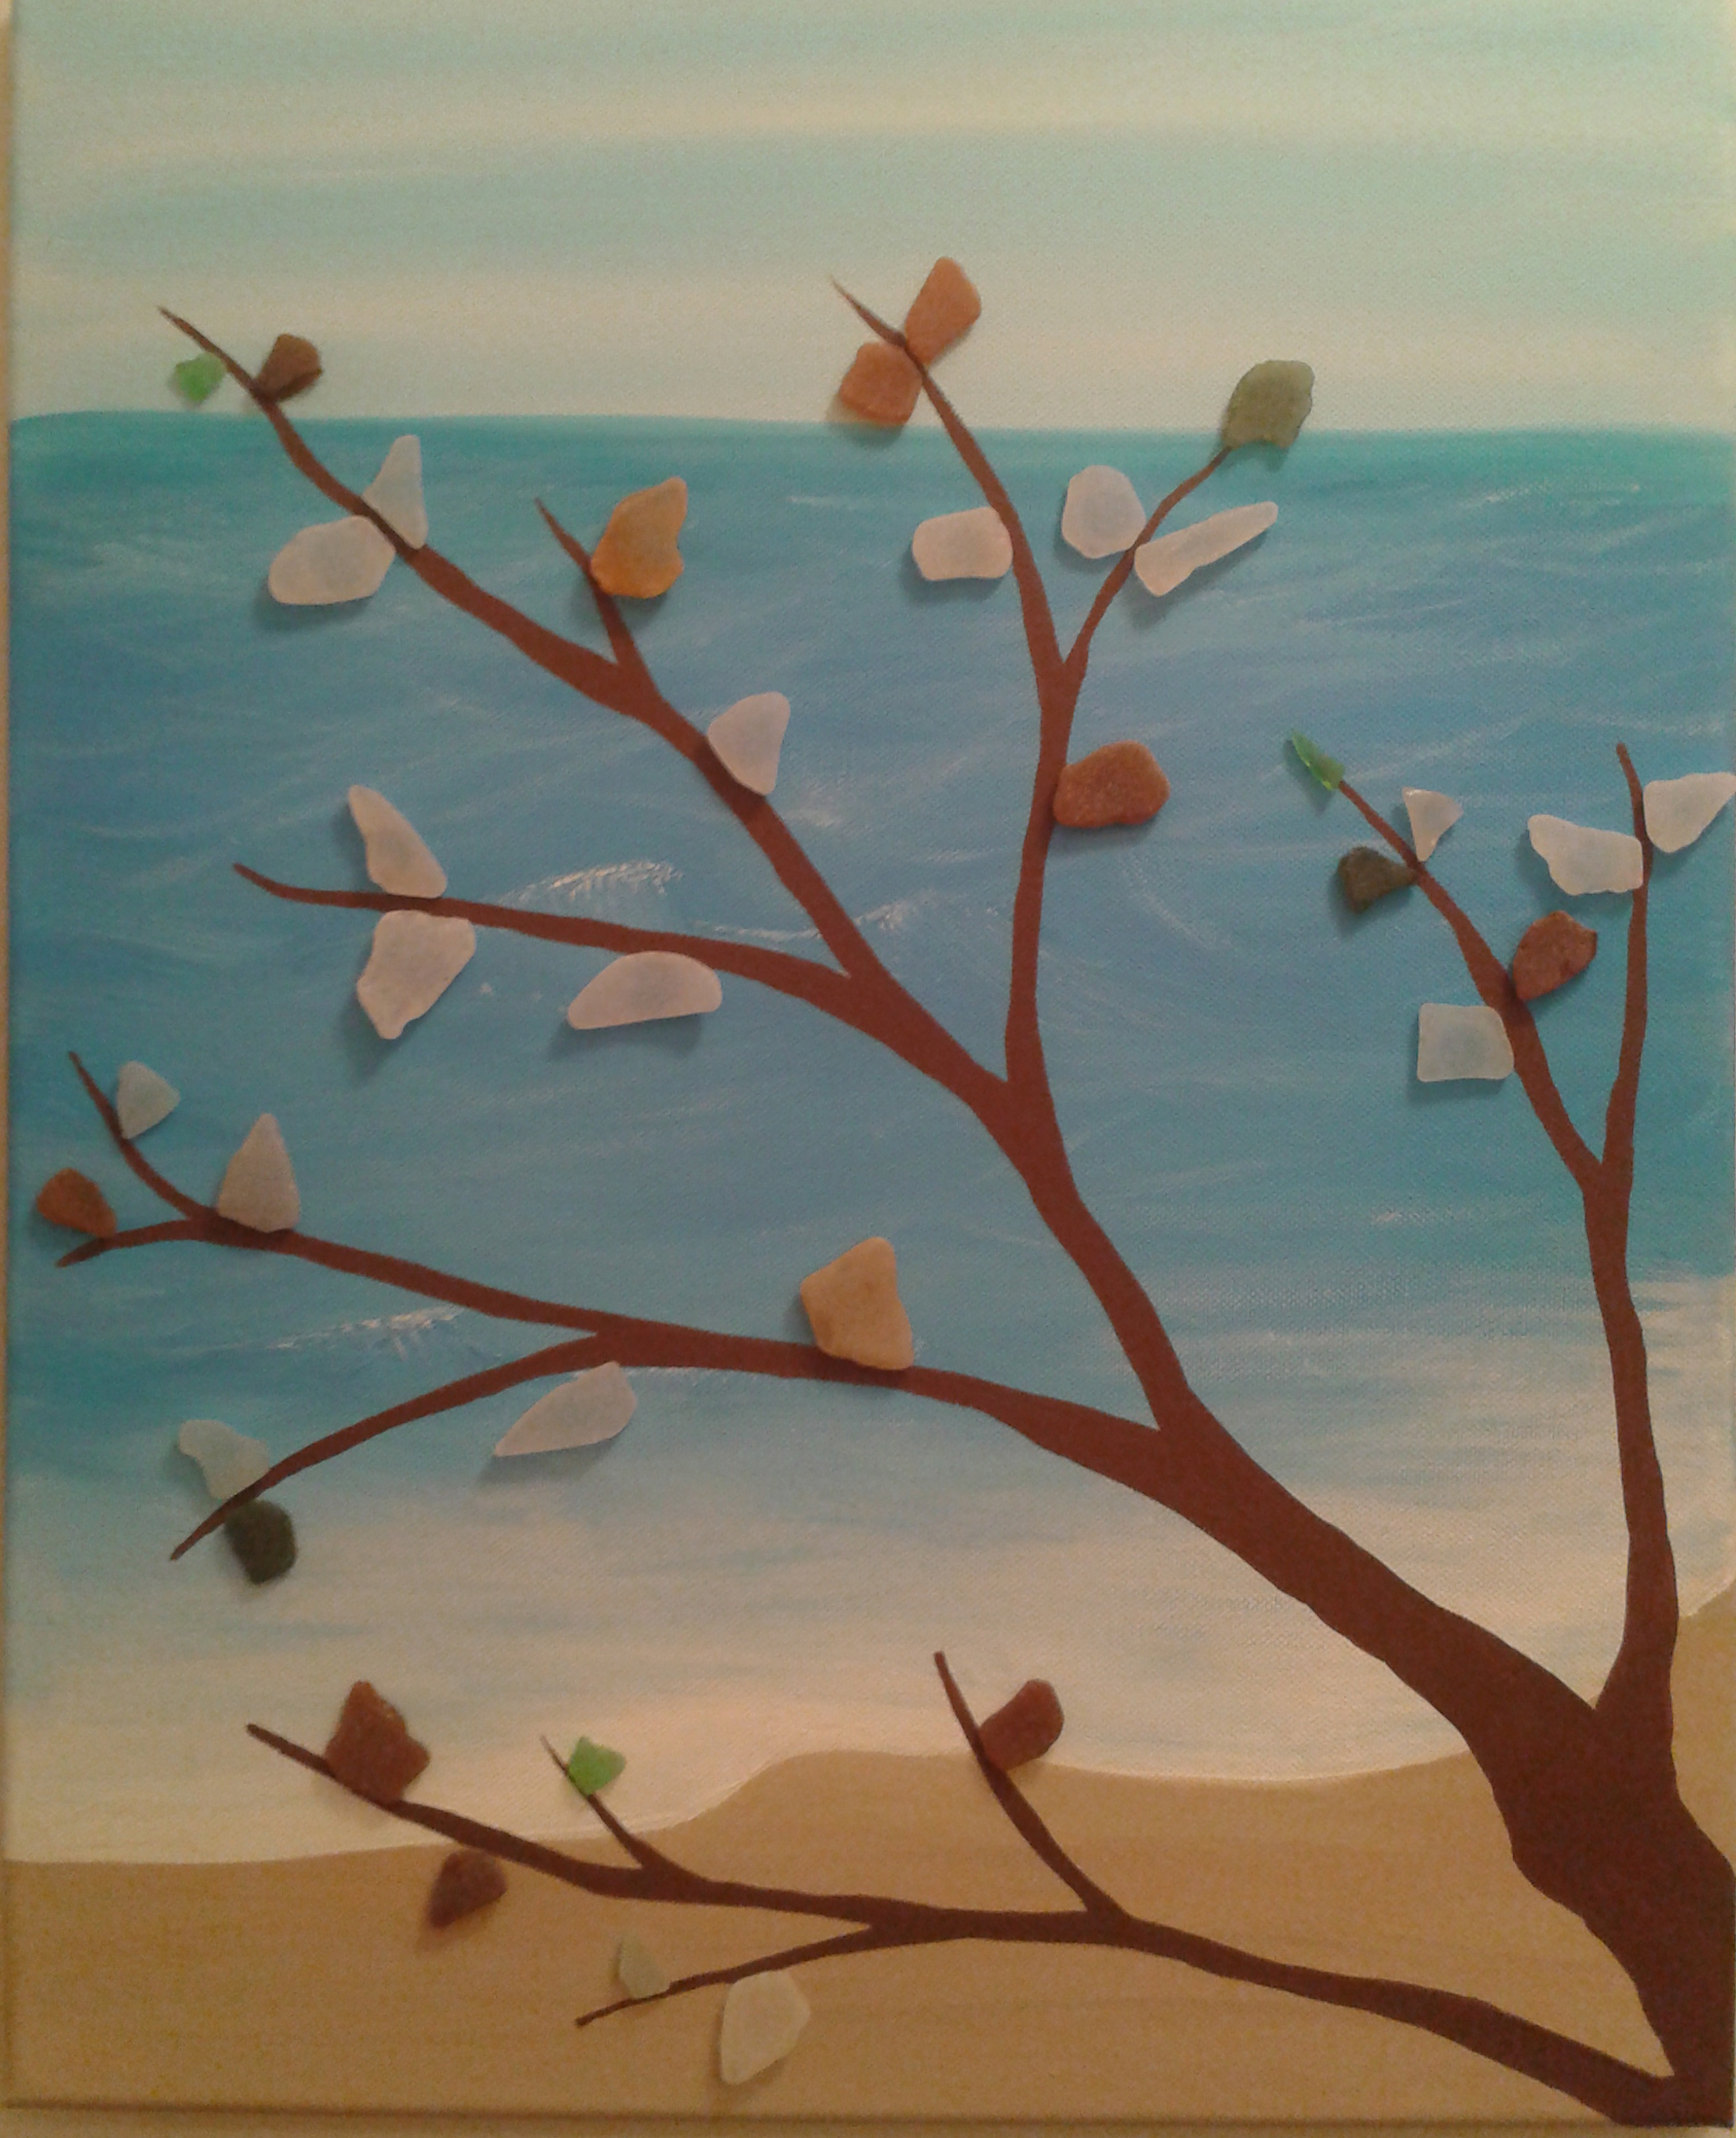 aqua sea glass art - nve media